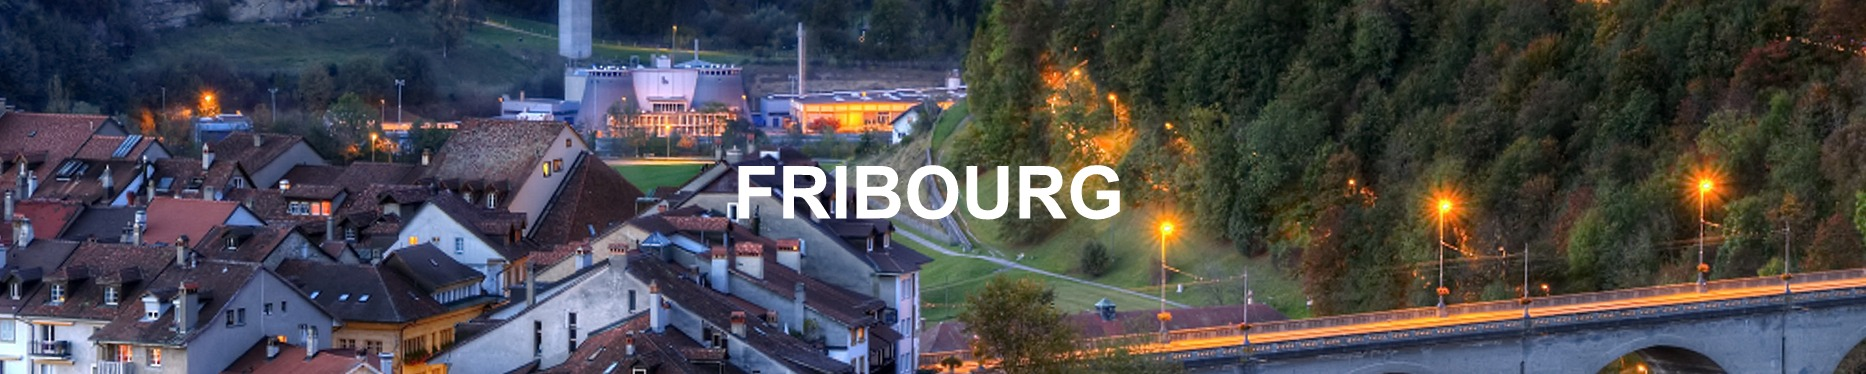 evolution prix m2 immobilier fribourg 2021